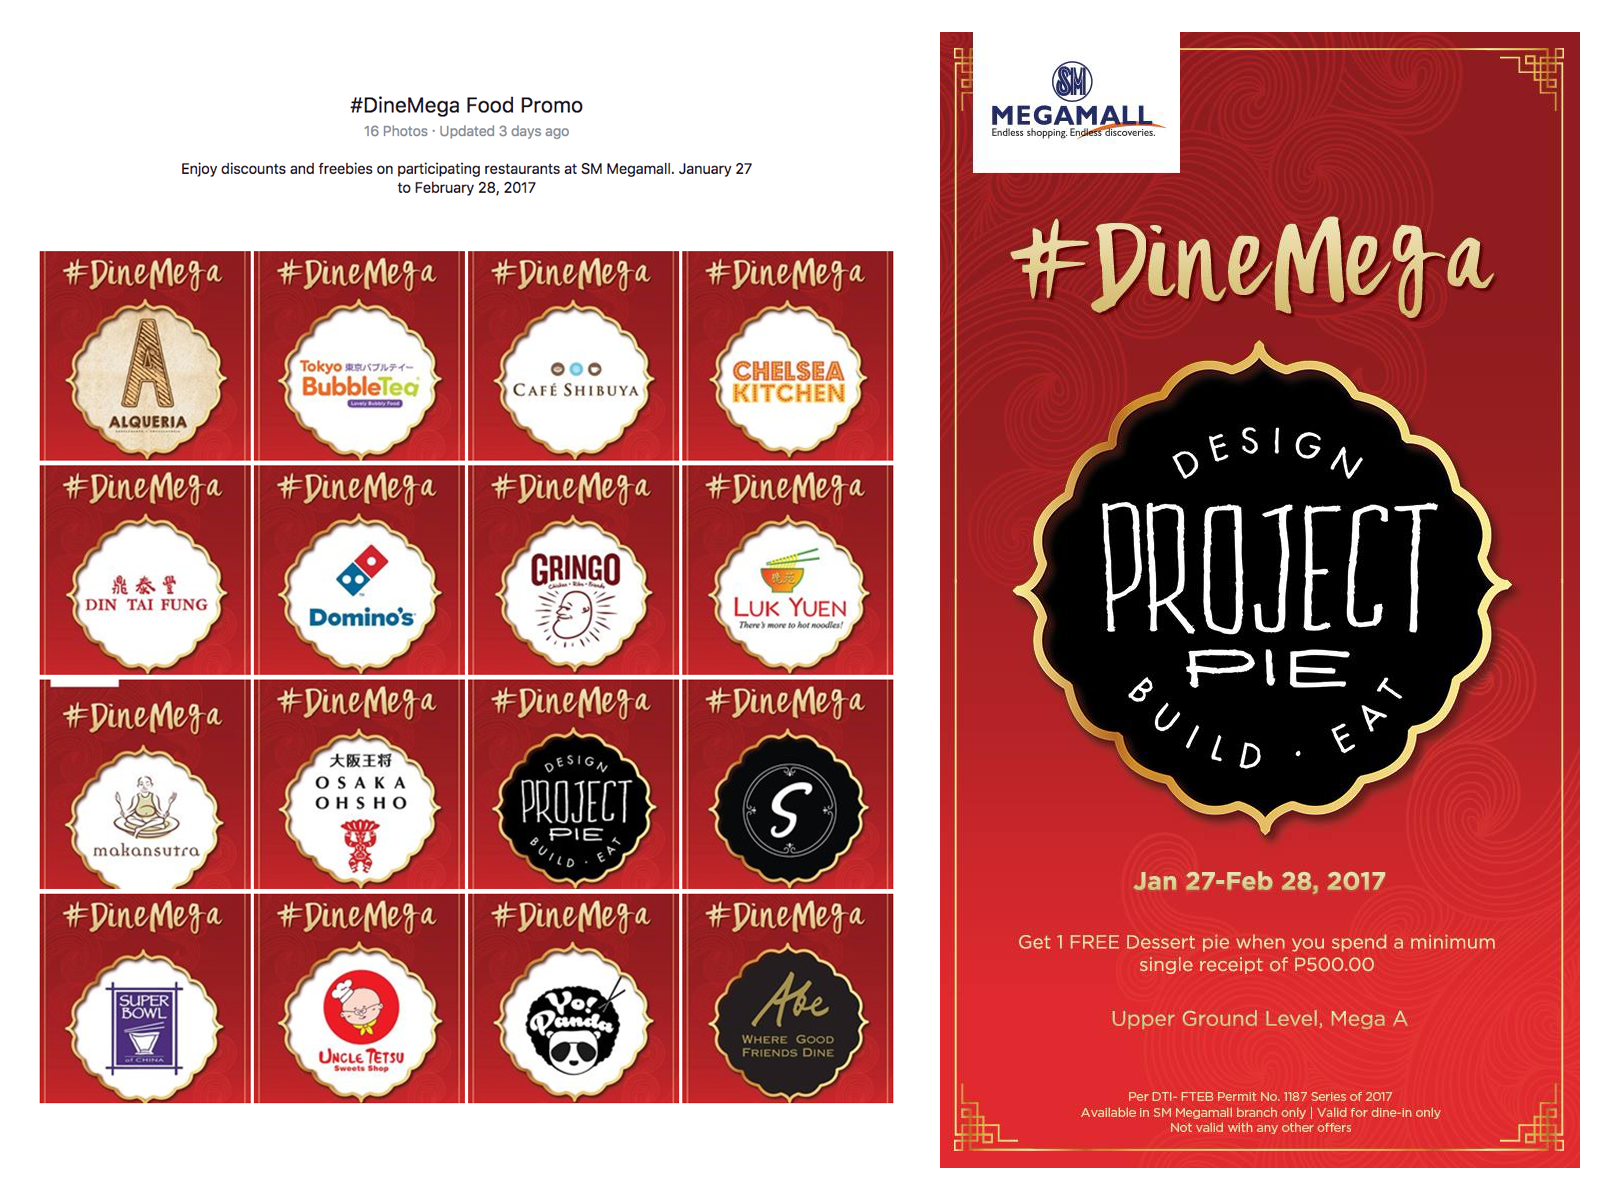 Mix Fickle on SM Megamall's #DineMega Food Promo Campaign